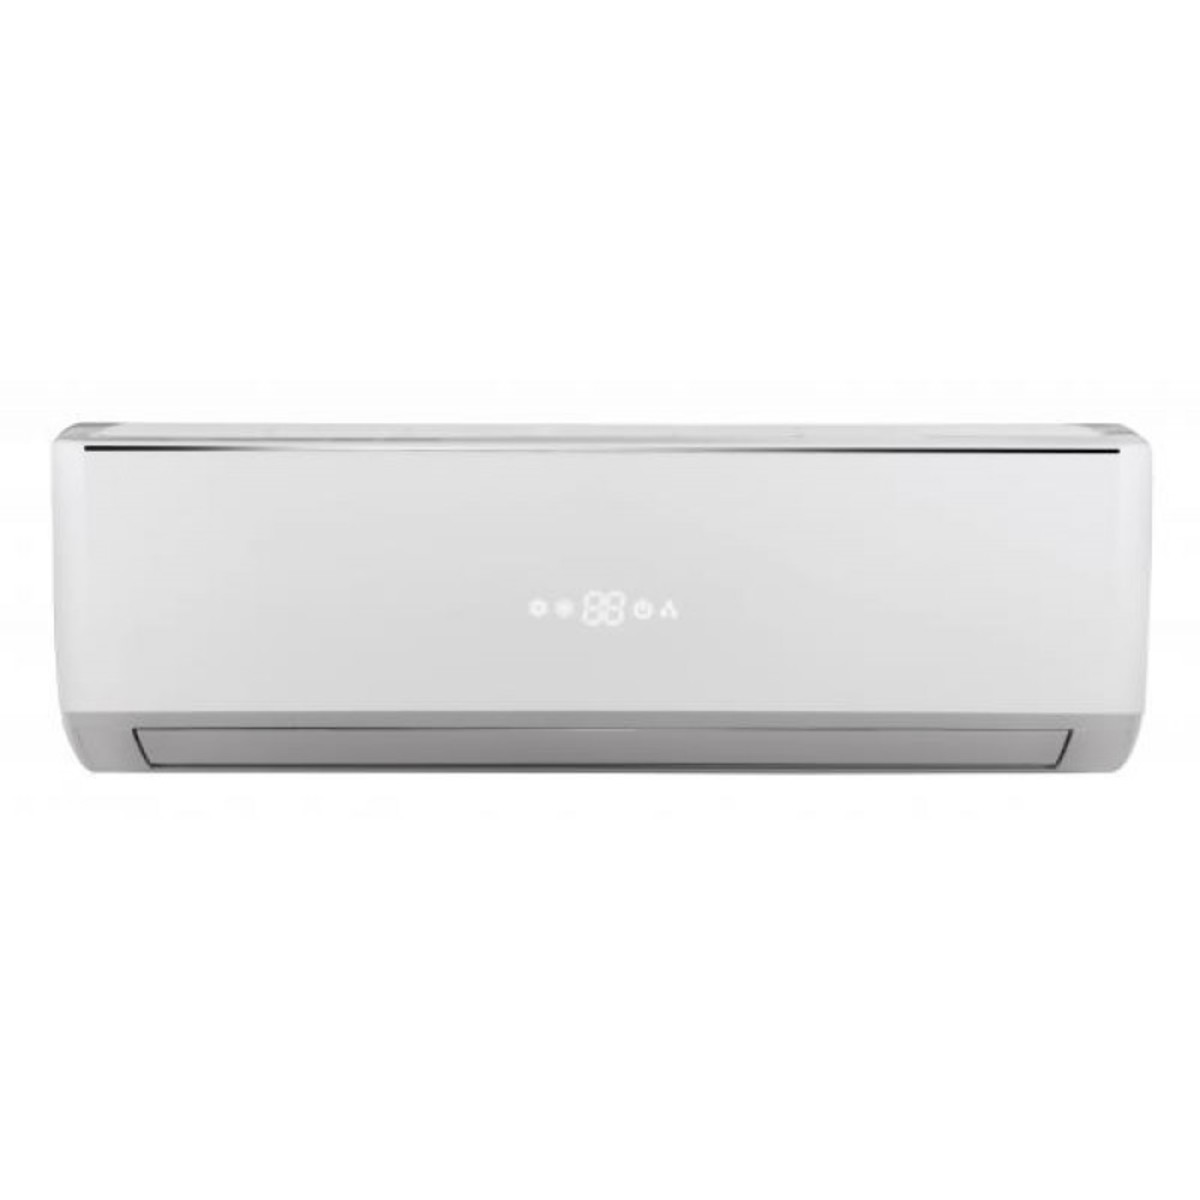 GIM09A 1.0HP R410A Reverse Cycle Split Type Air Conditioner  Hong Kong Warranty Genuine Products